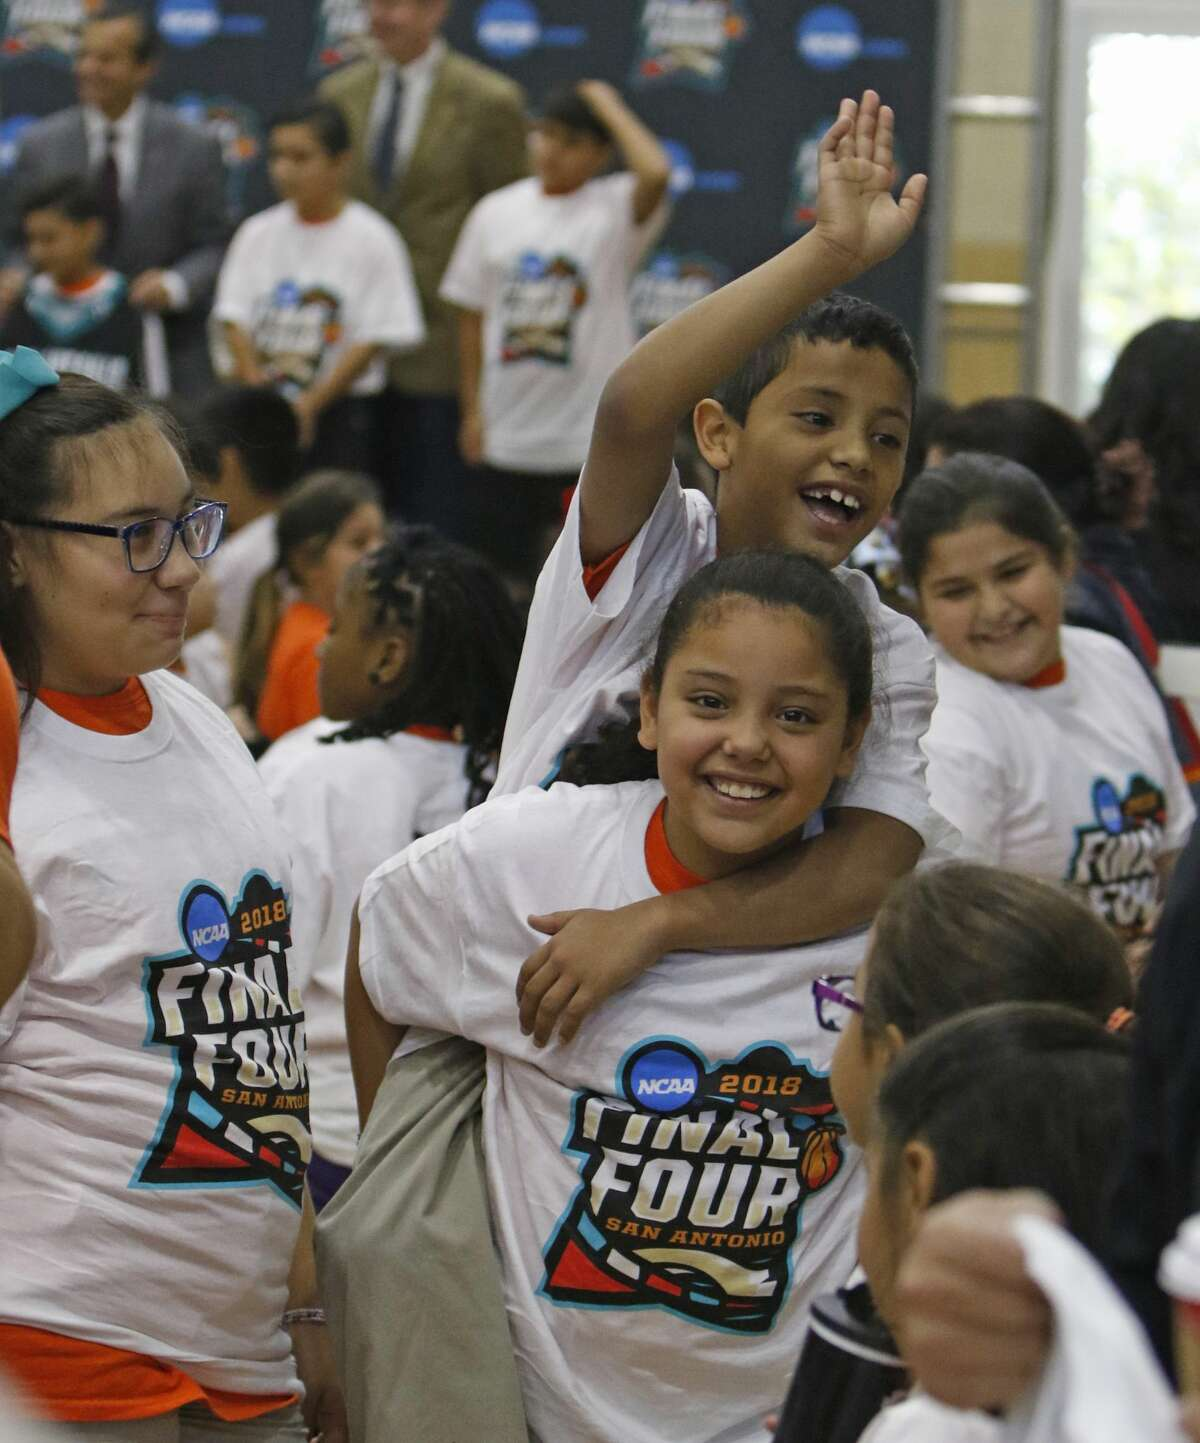 Elementary students from the San Antonio Sports i play after school program celebrate after being given t shirts with final four logo at the Final Four Logo Unveiling & Pep Rally Kick Off Road to San Antonio. The NCAA and San Antonio Local Organizing Committee (SALOC) will unveil the logo for the 2018 Men?•s Final Four¨ before 1,000 elementary students, dignitaries and special guests. The UTSA band and cheerleaders will also participate. The unveiling kicks off 18 months of preparation as San Antonio gets ready to host this premier sports event. Thursday, December 1, 2016 at Mission Conception Sports Gym.